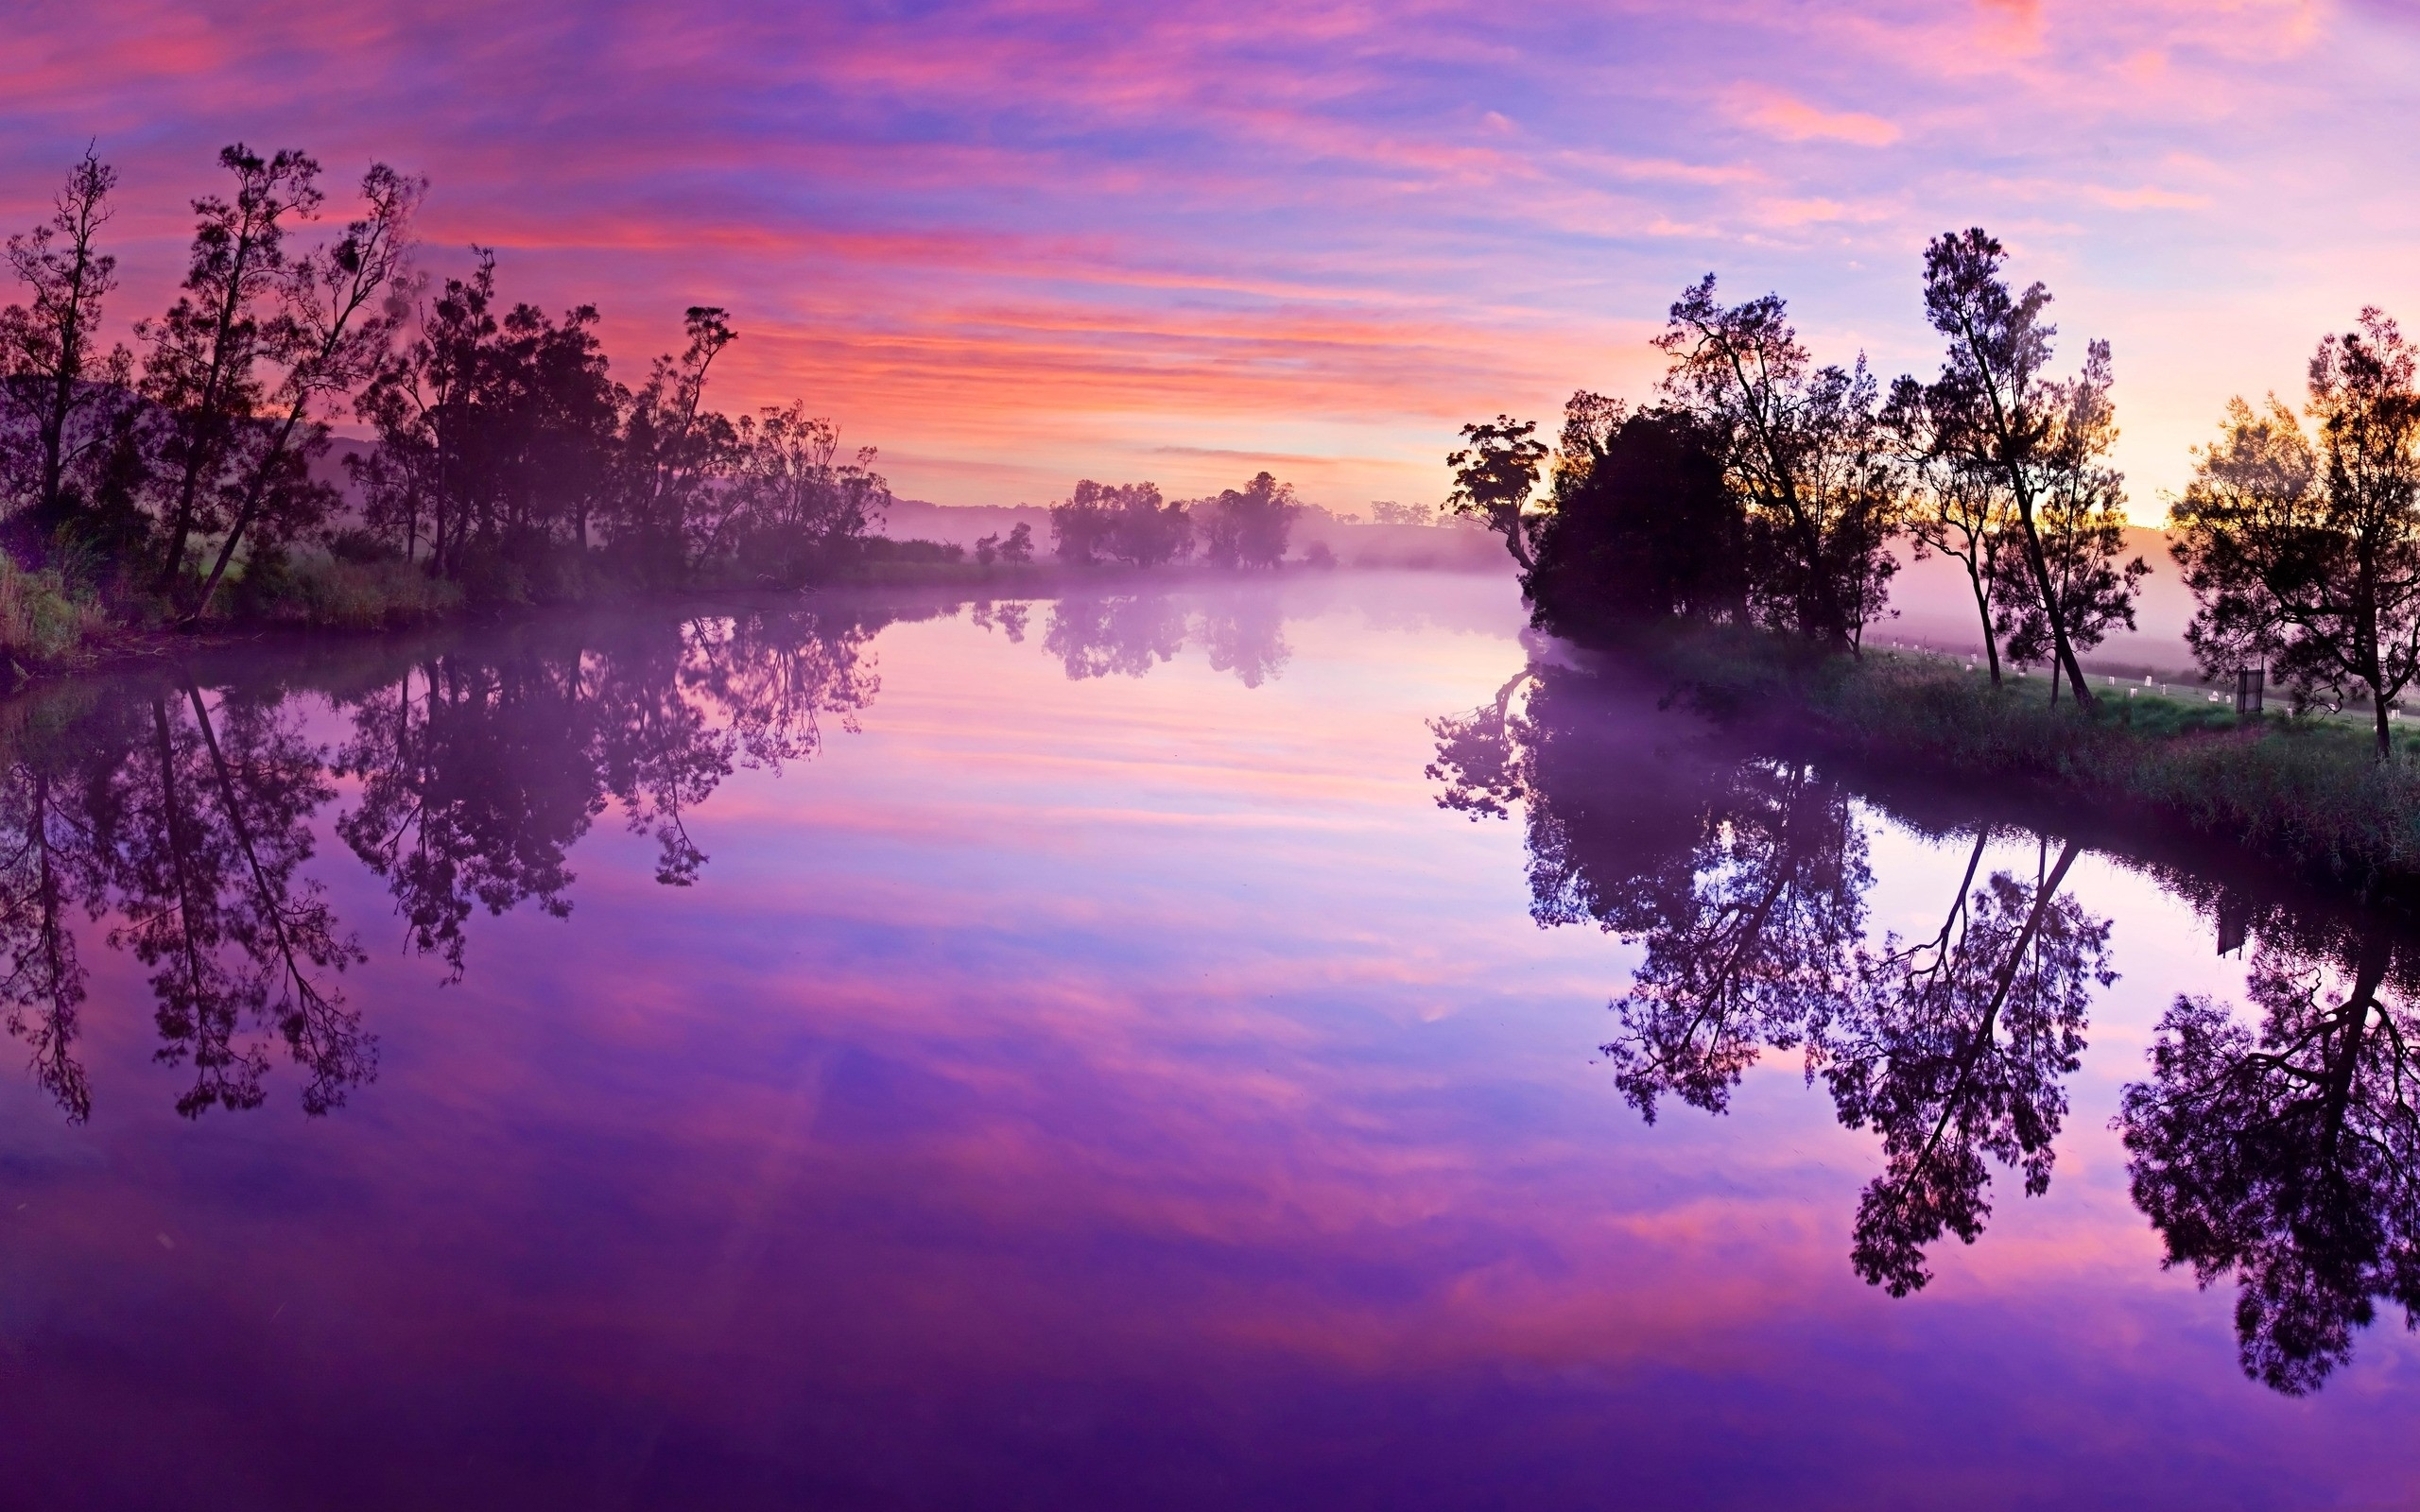 purple sky river trees reflect